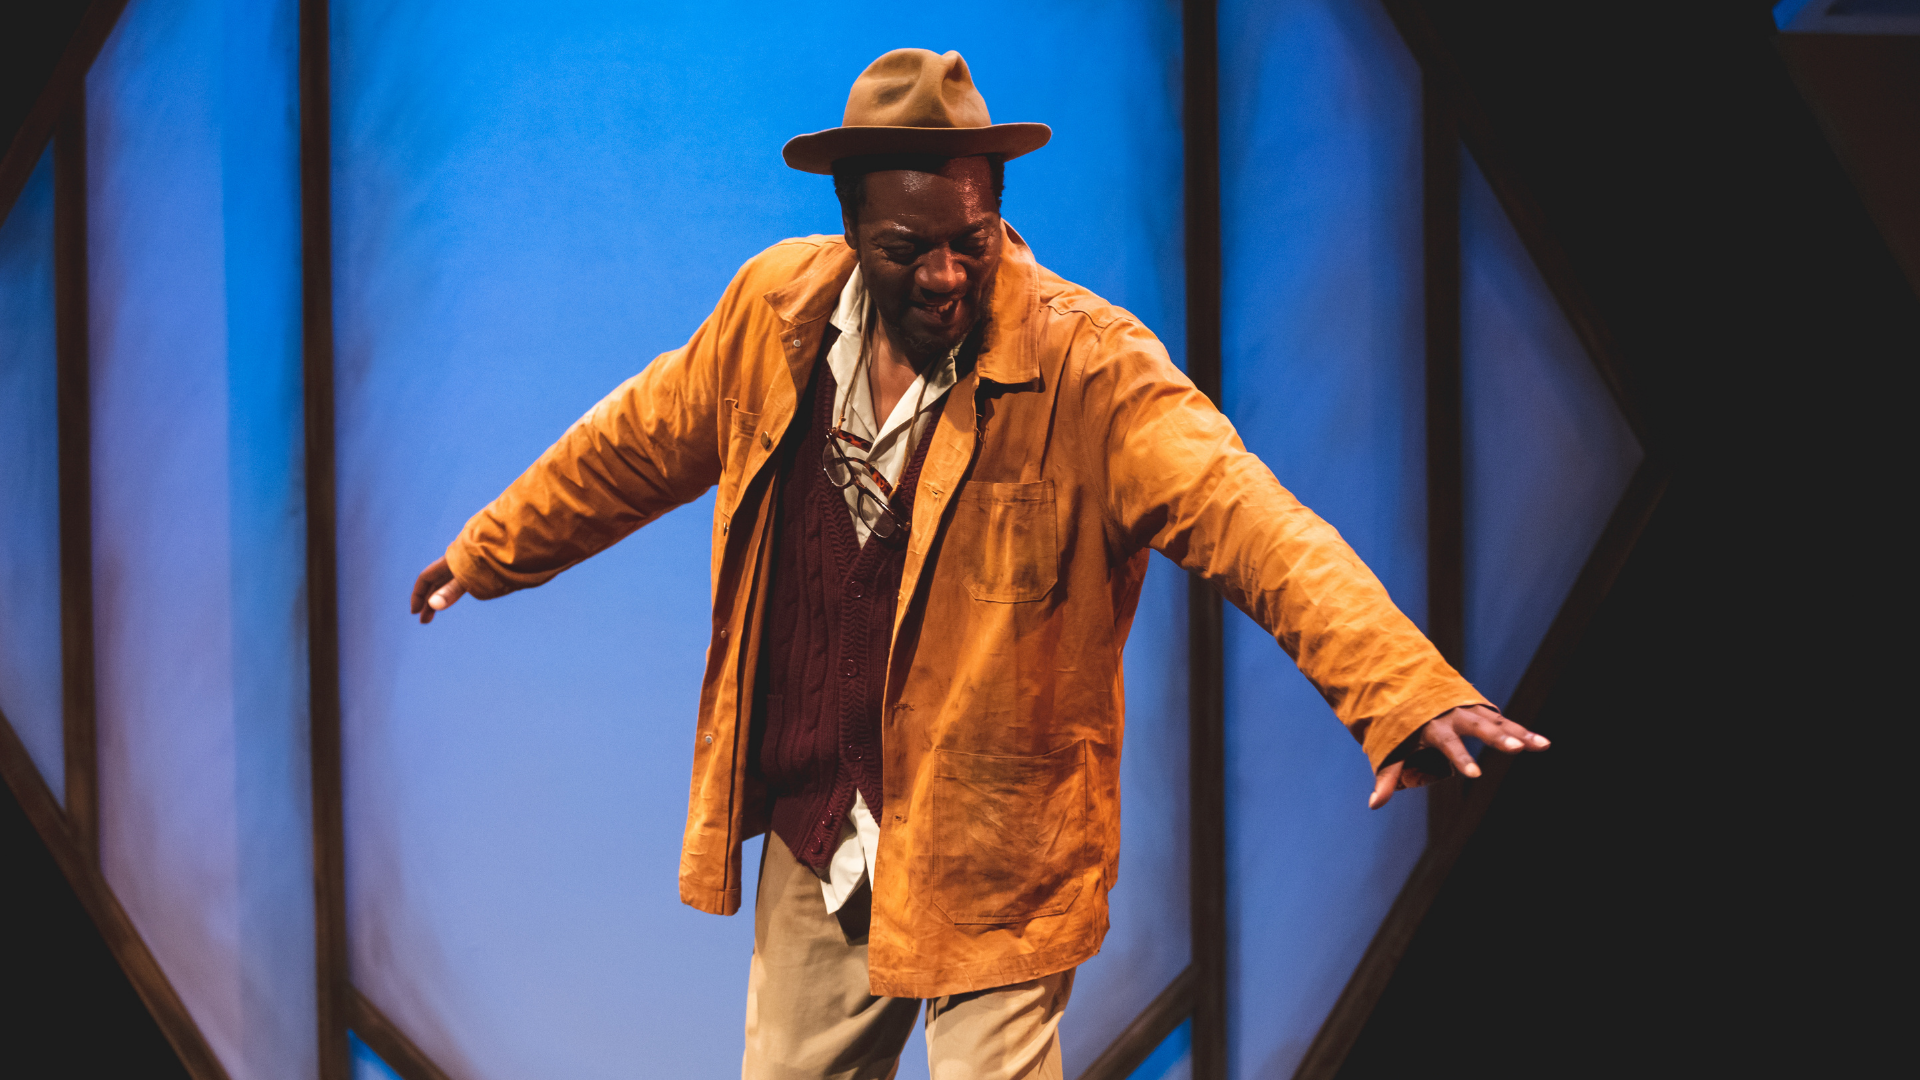 The Honey Man Production Photo: Honey Man (Everal Walsh) dances in front of a blue projection